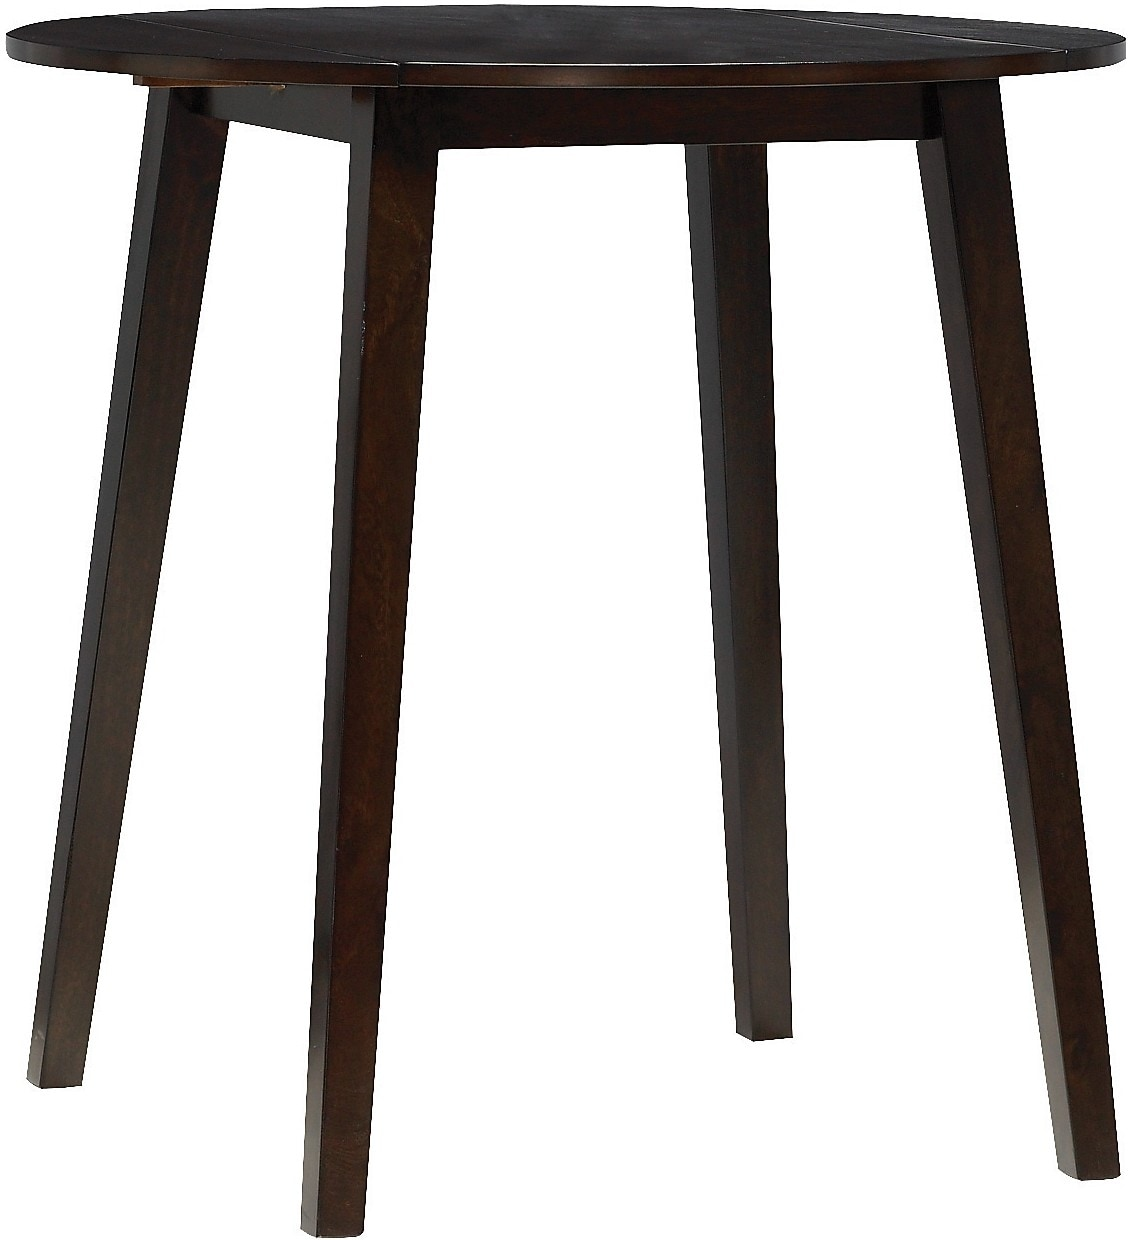 Dakota Counter Height Round Drop Leaf Table United  : 336066 from www.ufw.com size 1128 x 1240 jpeg 252kB